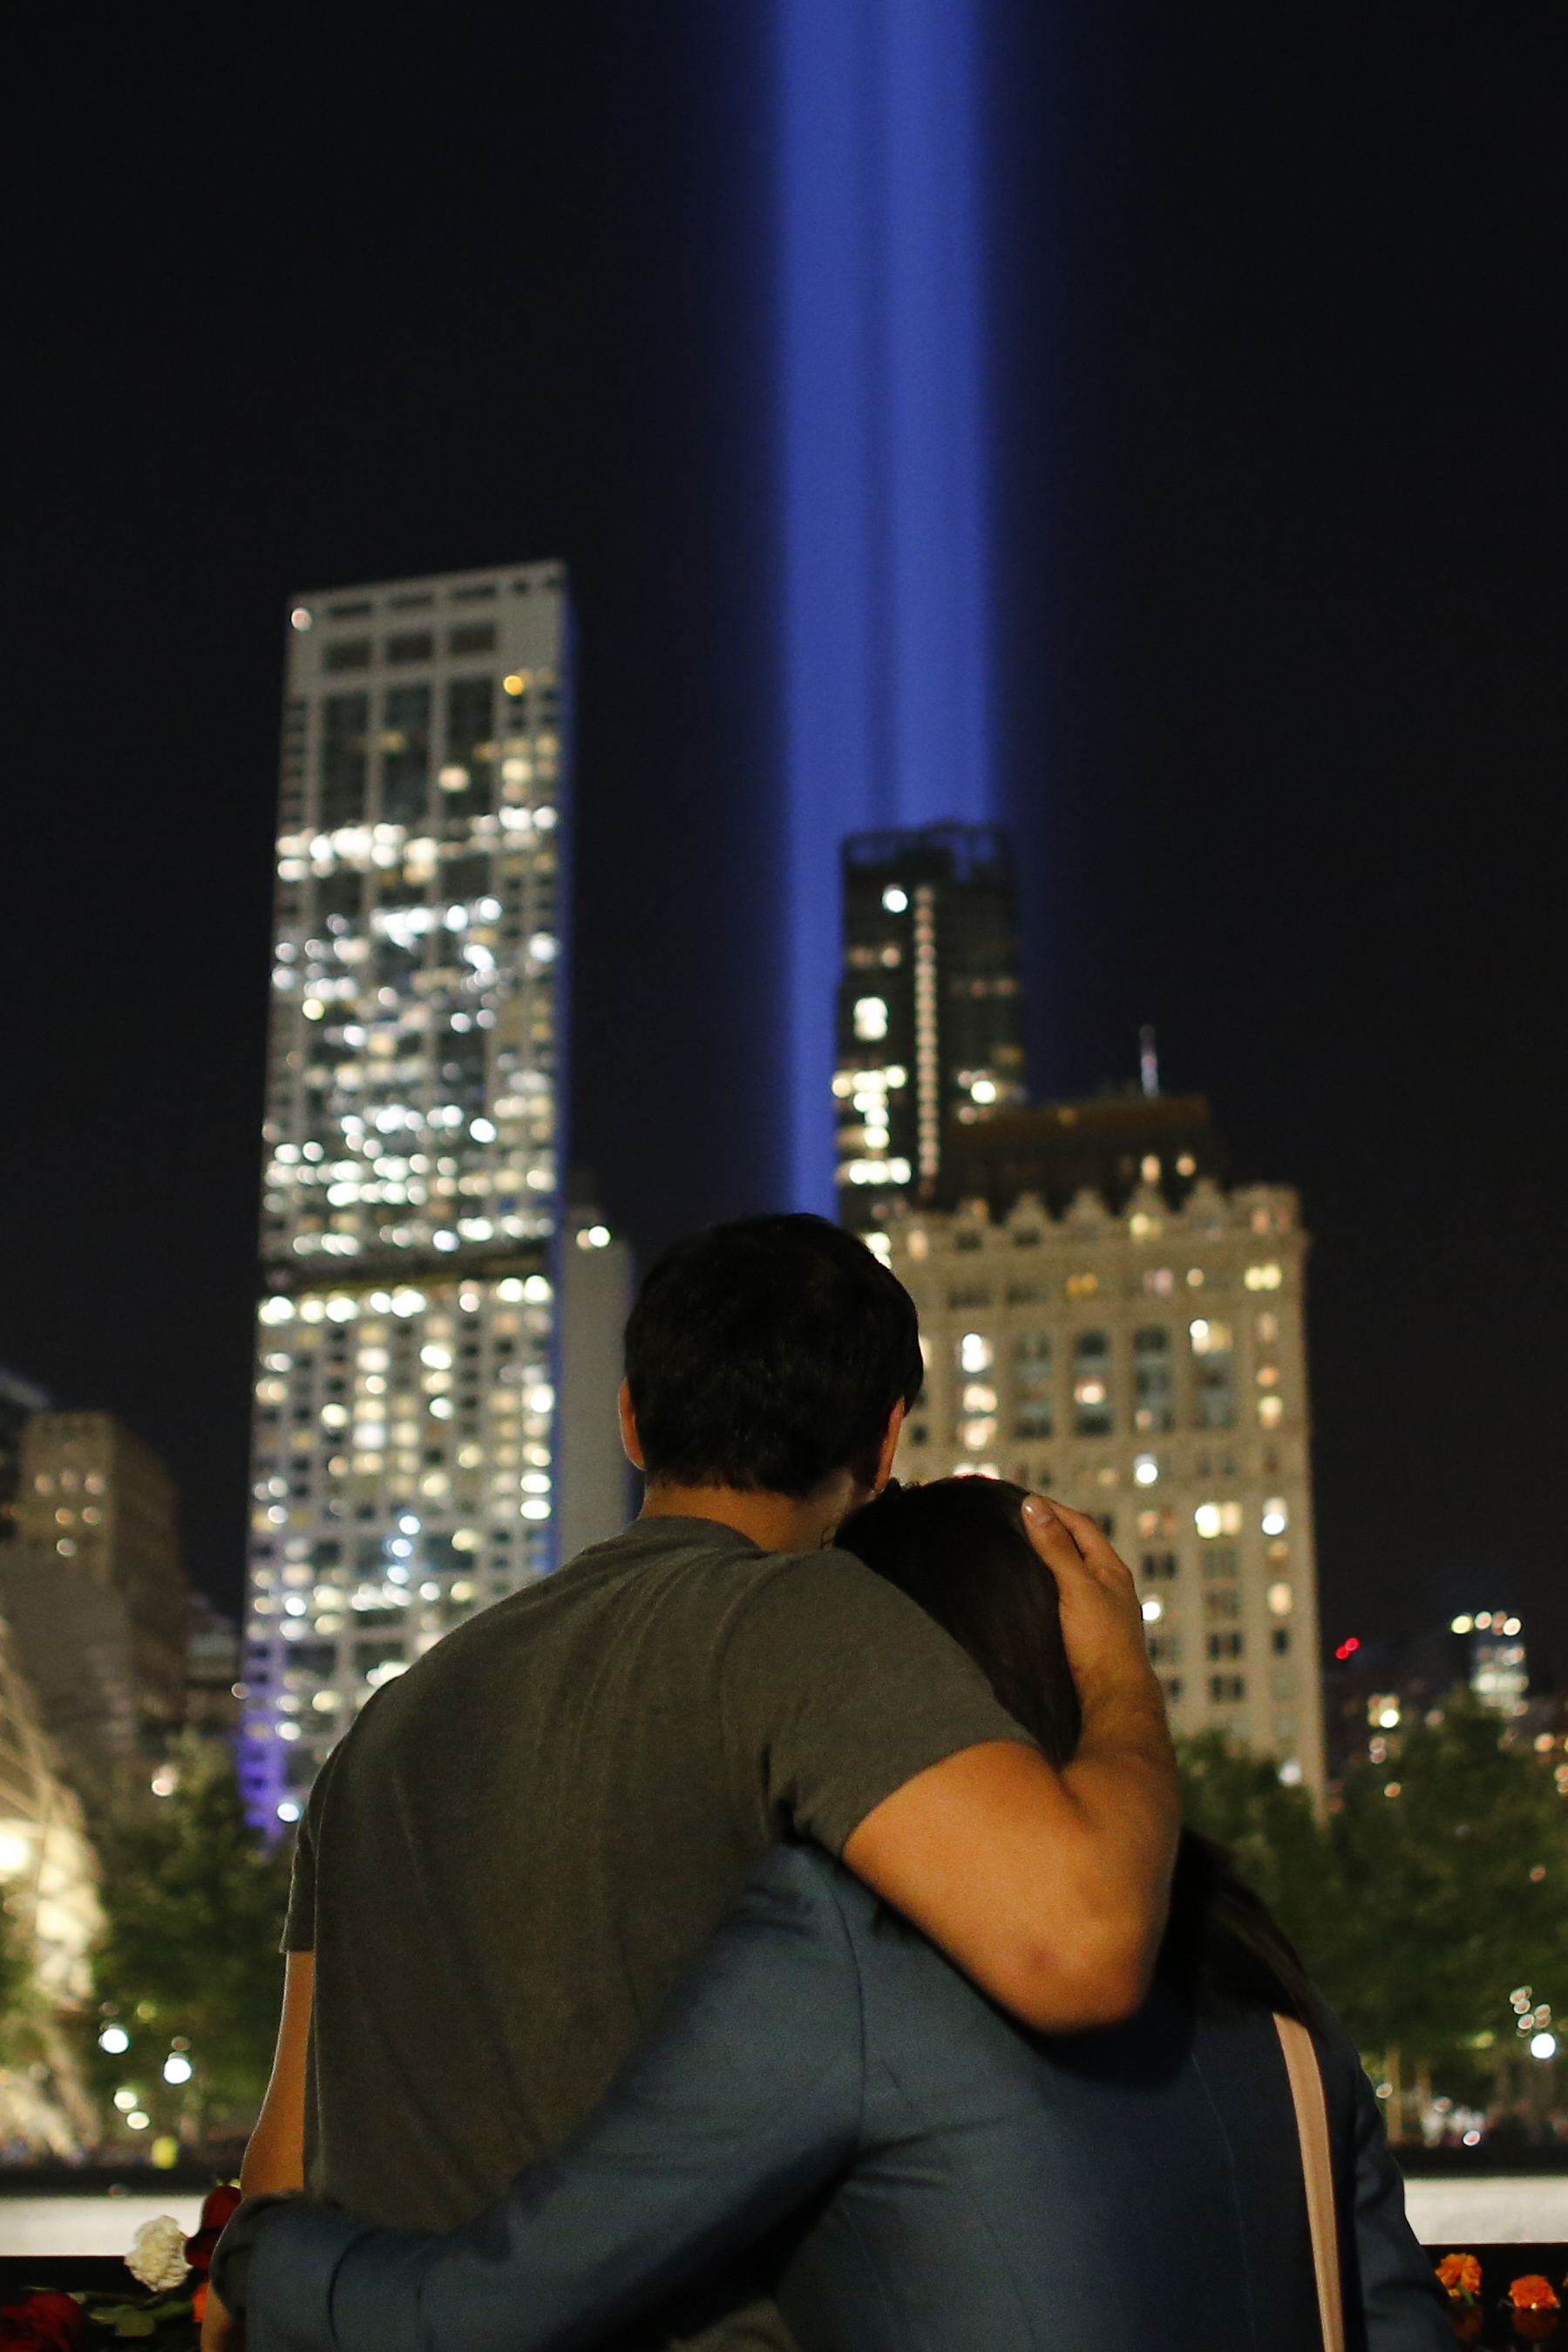 "<div class=""meta image-caption""><div class=""origin-logo origin-image none""><span>none</span></div><span class=""caption-text"">A couple embraces as the Tribute in Light is seen in the sky on the 16th anniversary of the Sept. 11 terror attacks, Monday, Sept. 11, 2017, in New York. (AP Photo/Jason DeCrow)</span></div>"